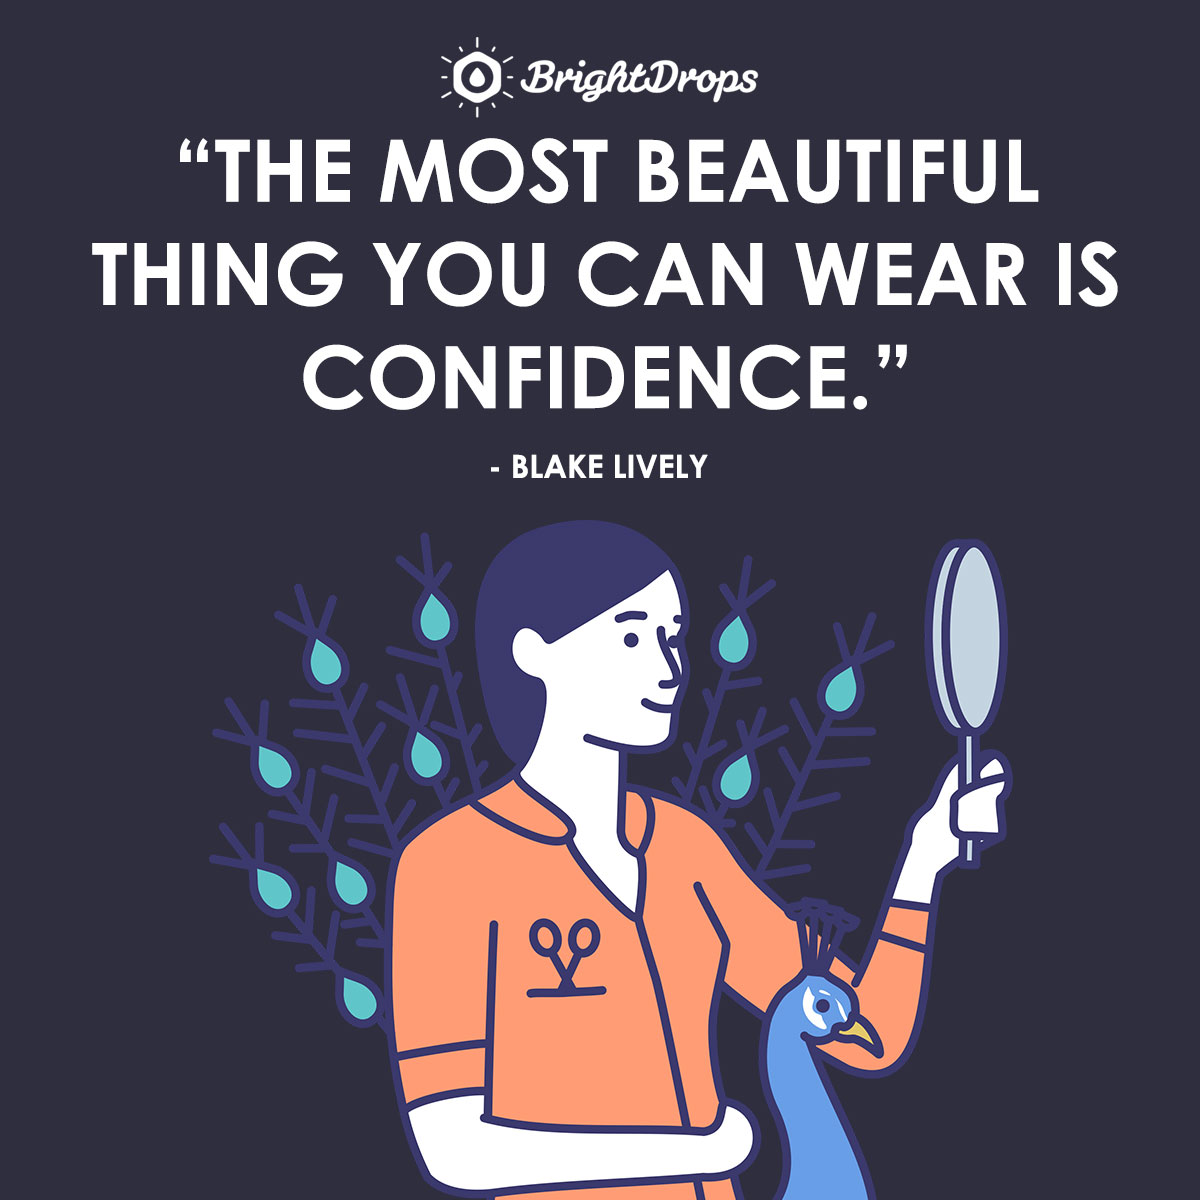 The most beautiful thing you can wear is confidence. - Blake Lively